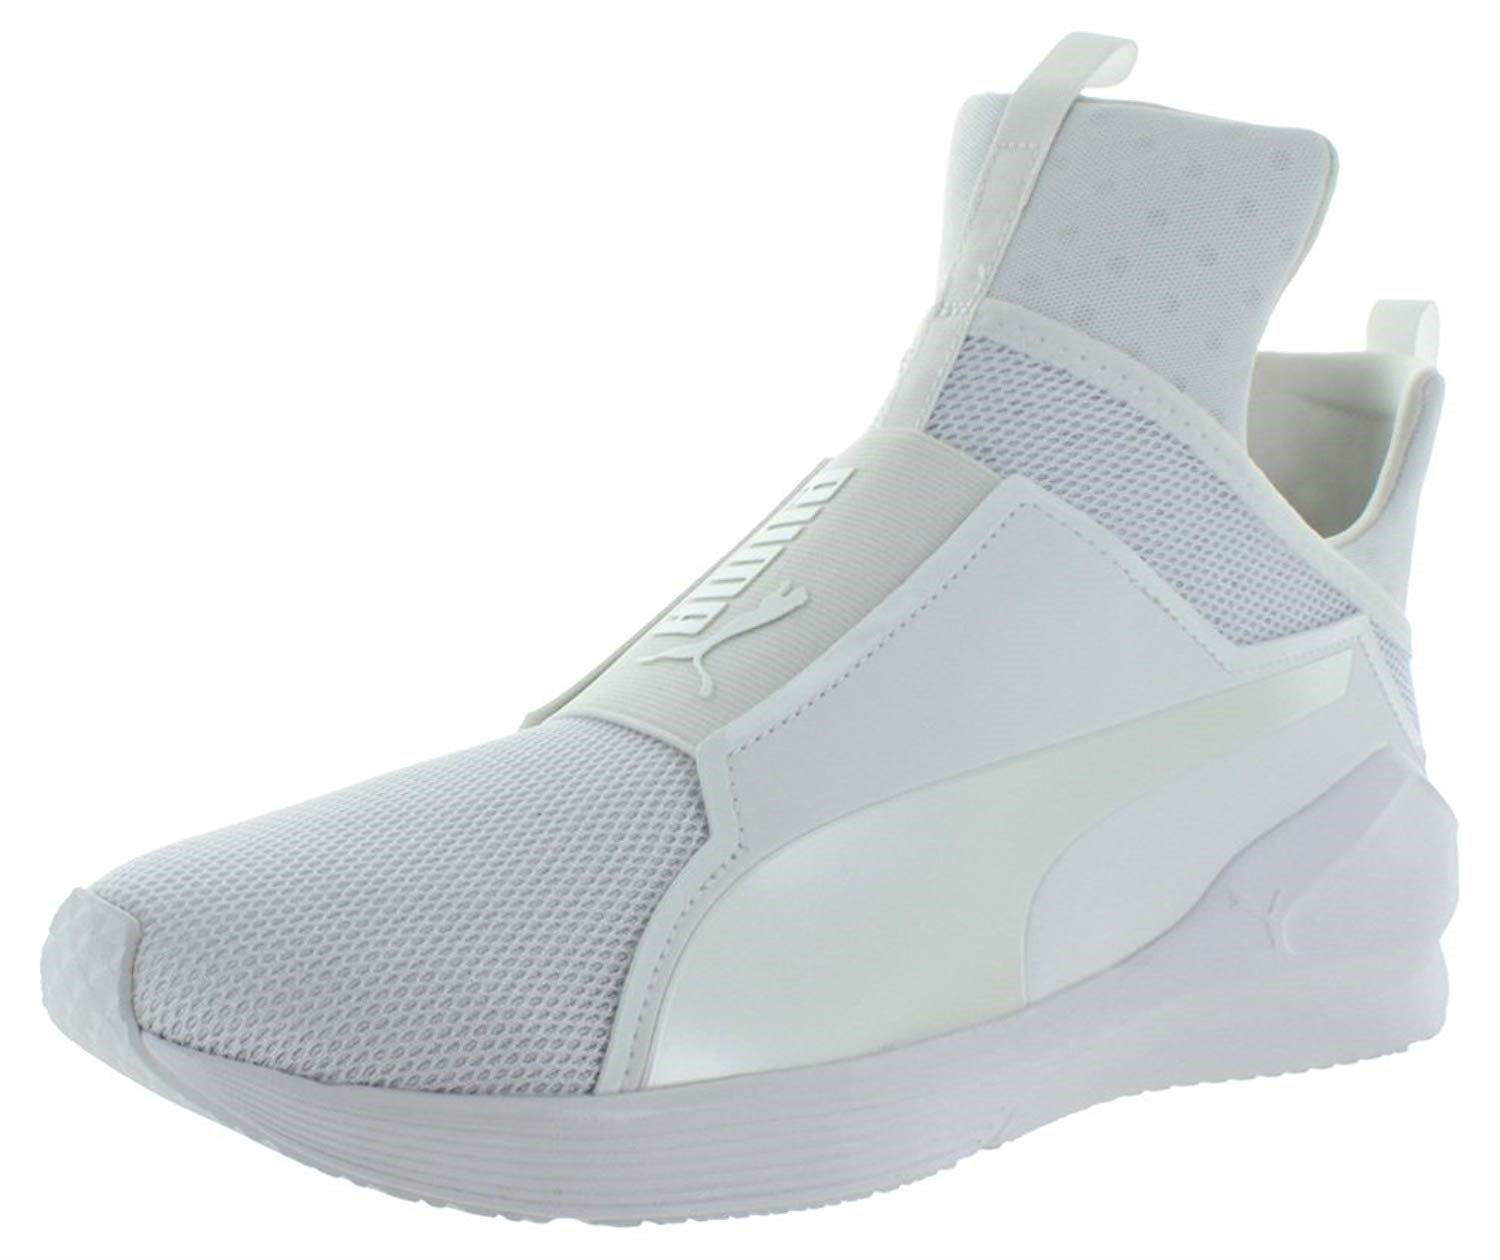 new style 2030f 26243 PUMA Mens Fierce Core Training Shoe